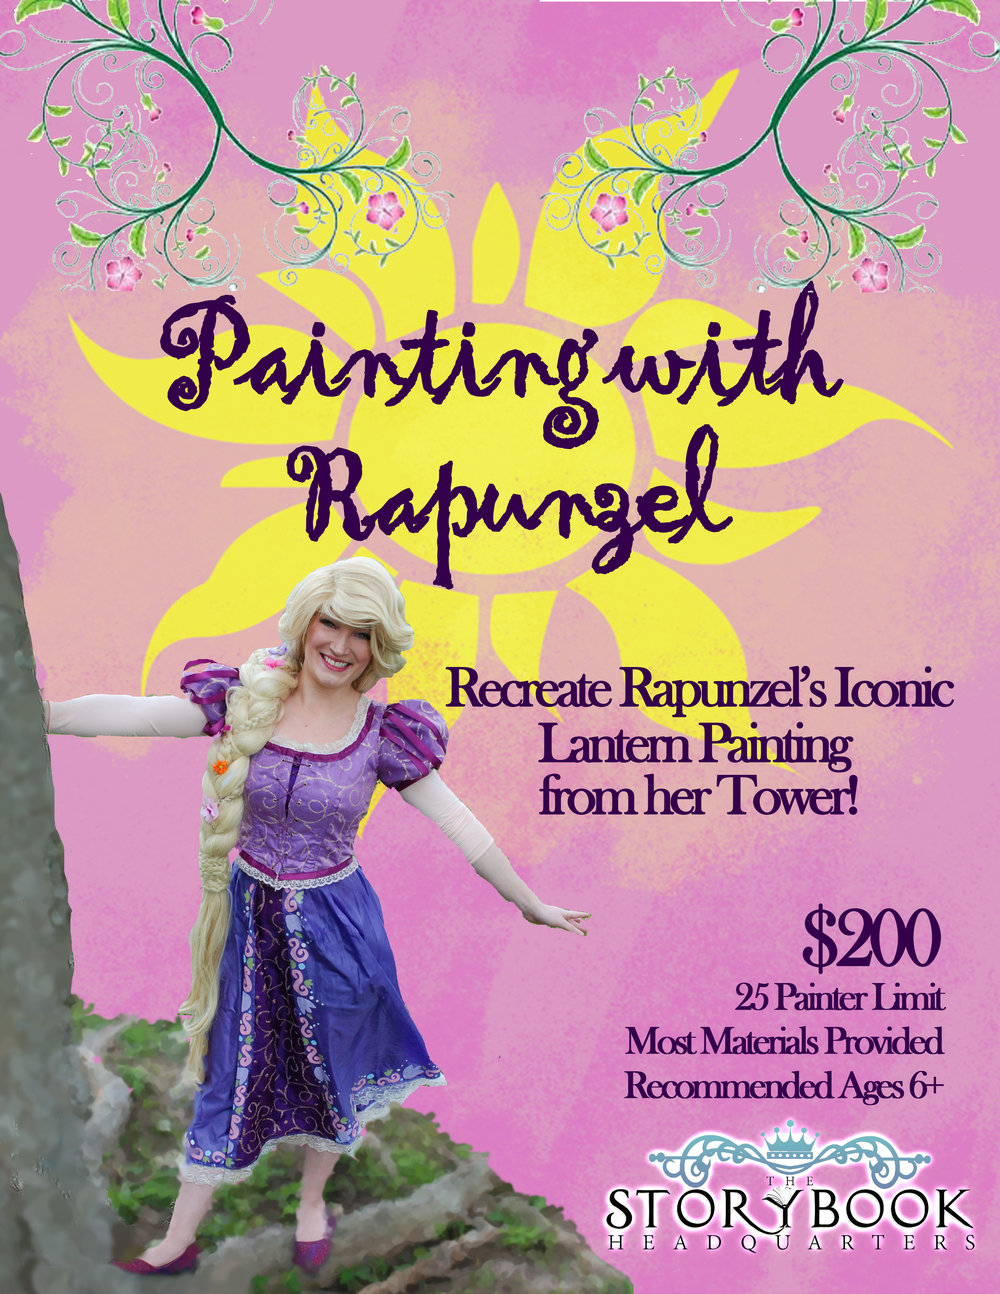 Join Rapunzel as she teaches you how to paint her iconic lantern picture she created for her tower!  Due to the nature of the workshop, it is recommended for ages 6 and up.  We provide the paint, brushes, canvases, water cups, and pallets.  A 5 Minute Storytime is also included in the middle of the workshop while waiting on paint to dry!  This workshop fills a one hour and fifteen minute time slot.  **Prices may vary if booking for a private party.